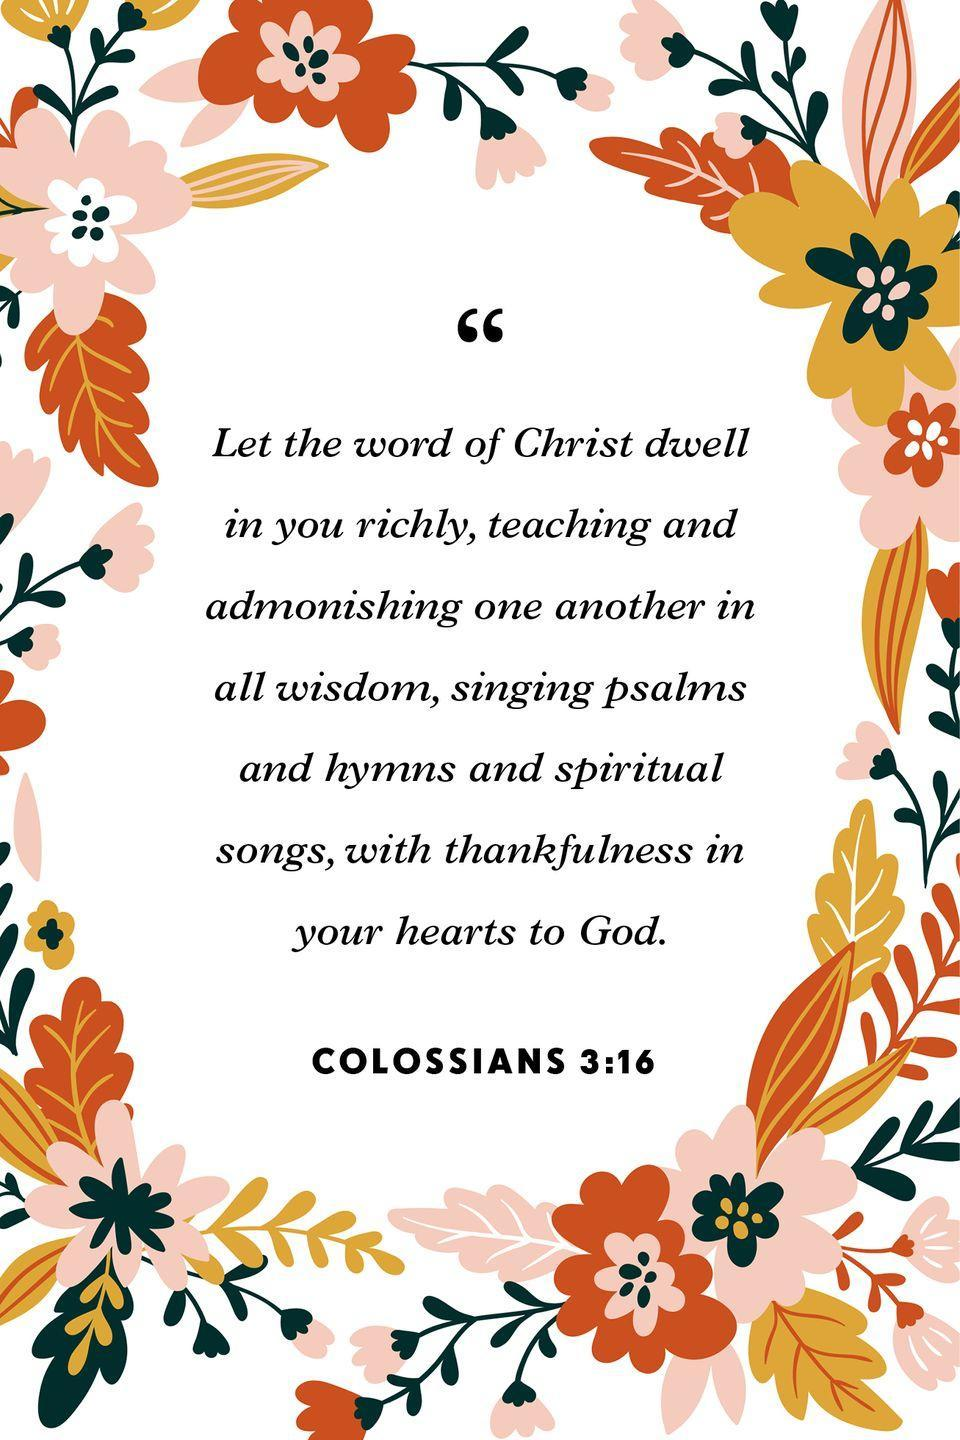 """<p>""""Let the word of Christ dwell in you richly, teaching and admonishing one another in all wisdom, singing psalms and hymns and spiritual songs, with thankfulness in your hearts to God.""""</p>"""